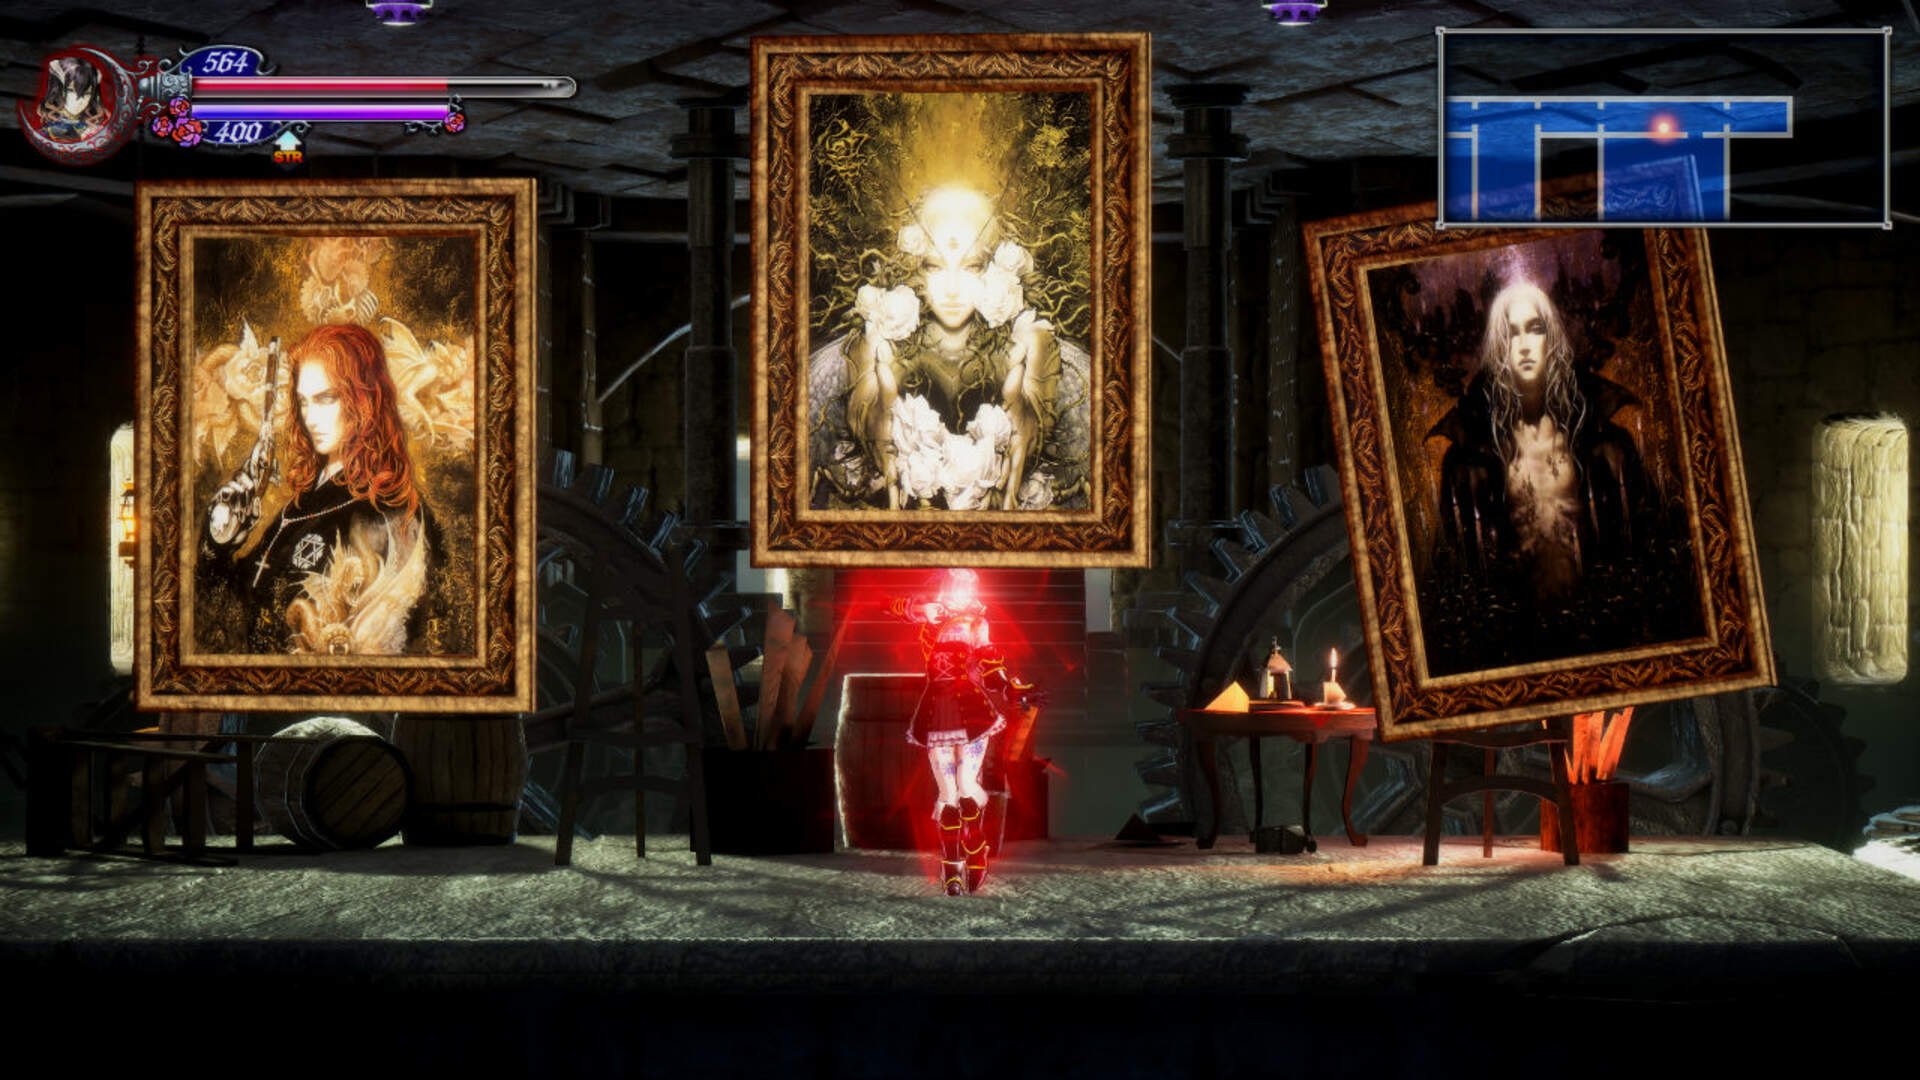 Bloodstained Mod Replaces Backer Portraits With Old Kojima Castlevania Artwork